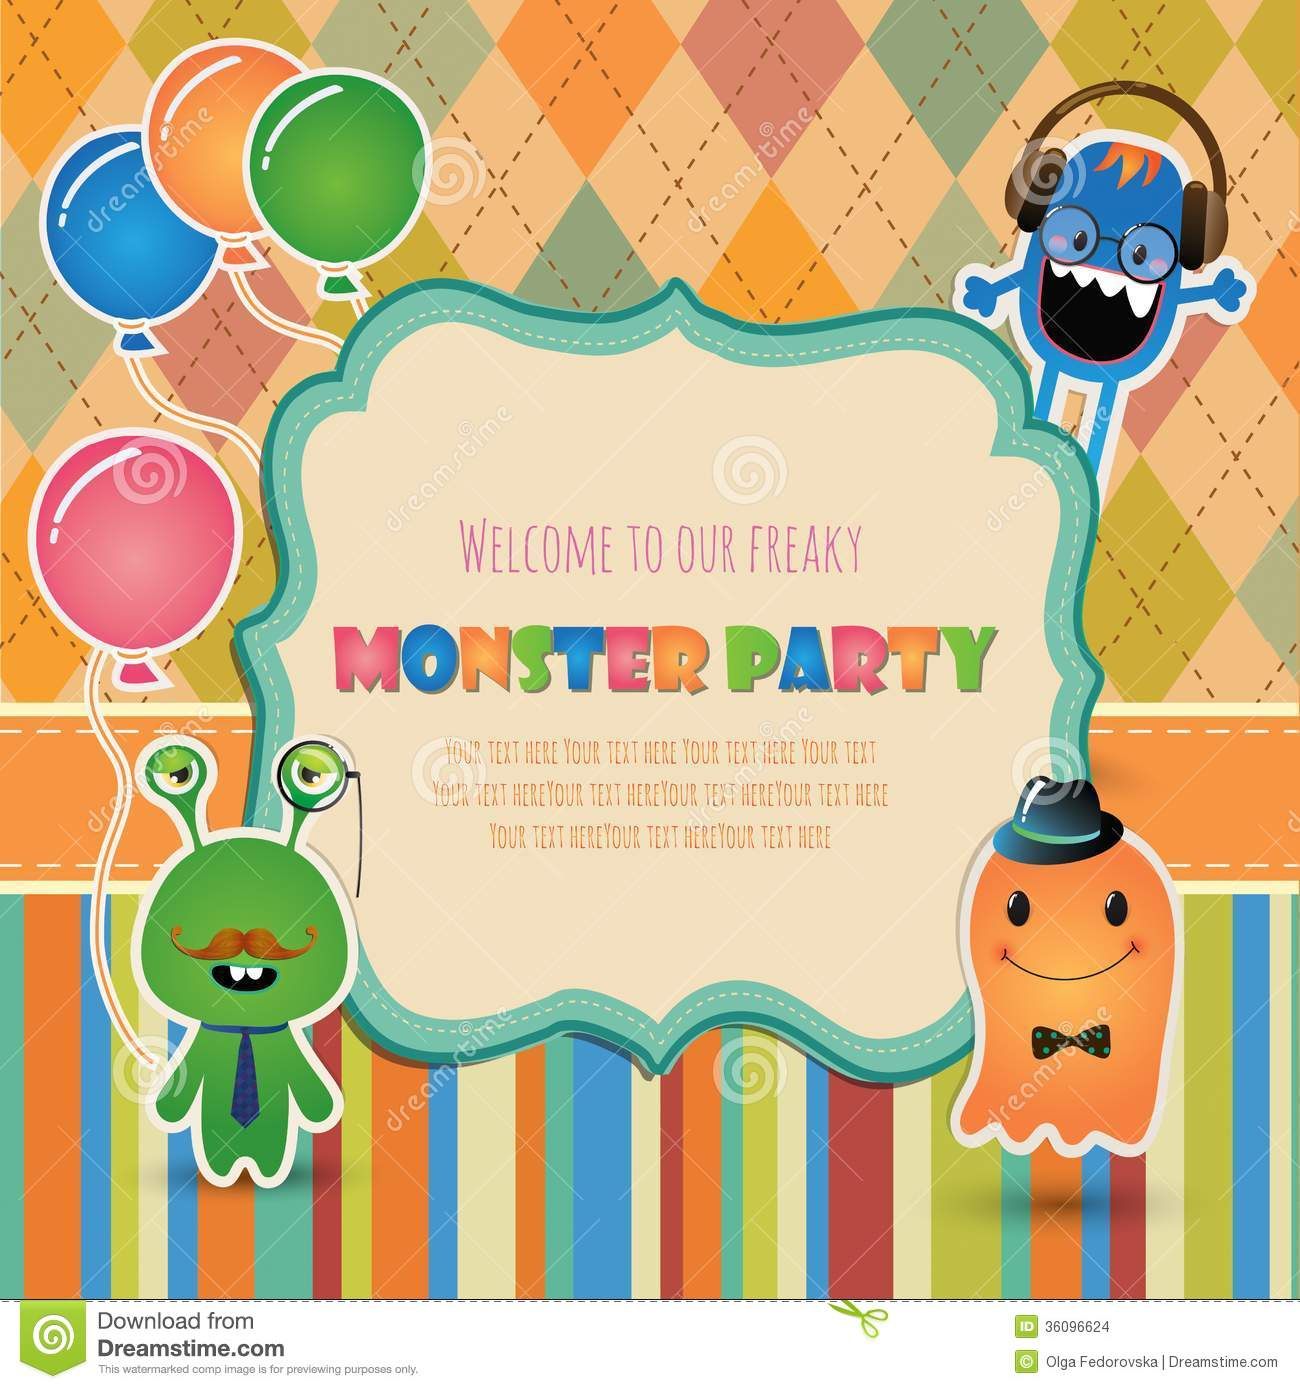 Monster Party Invitation Card Design Images Image 36096624 – Party Invitation Card Design